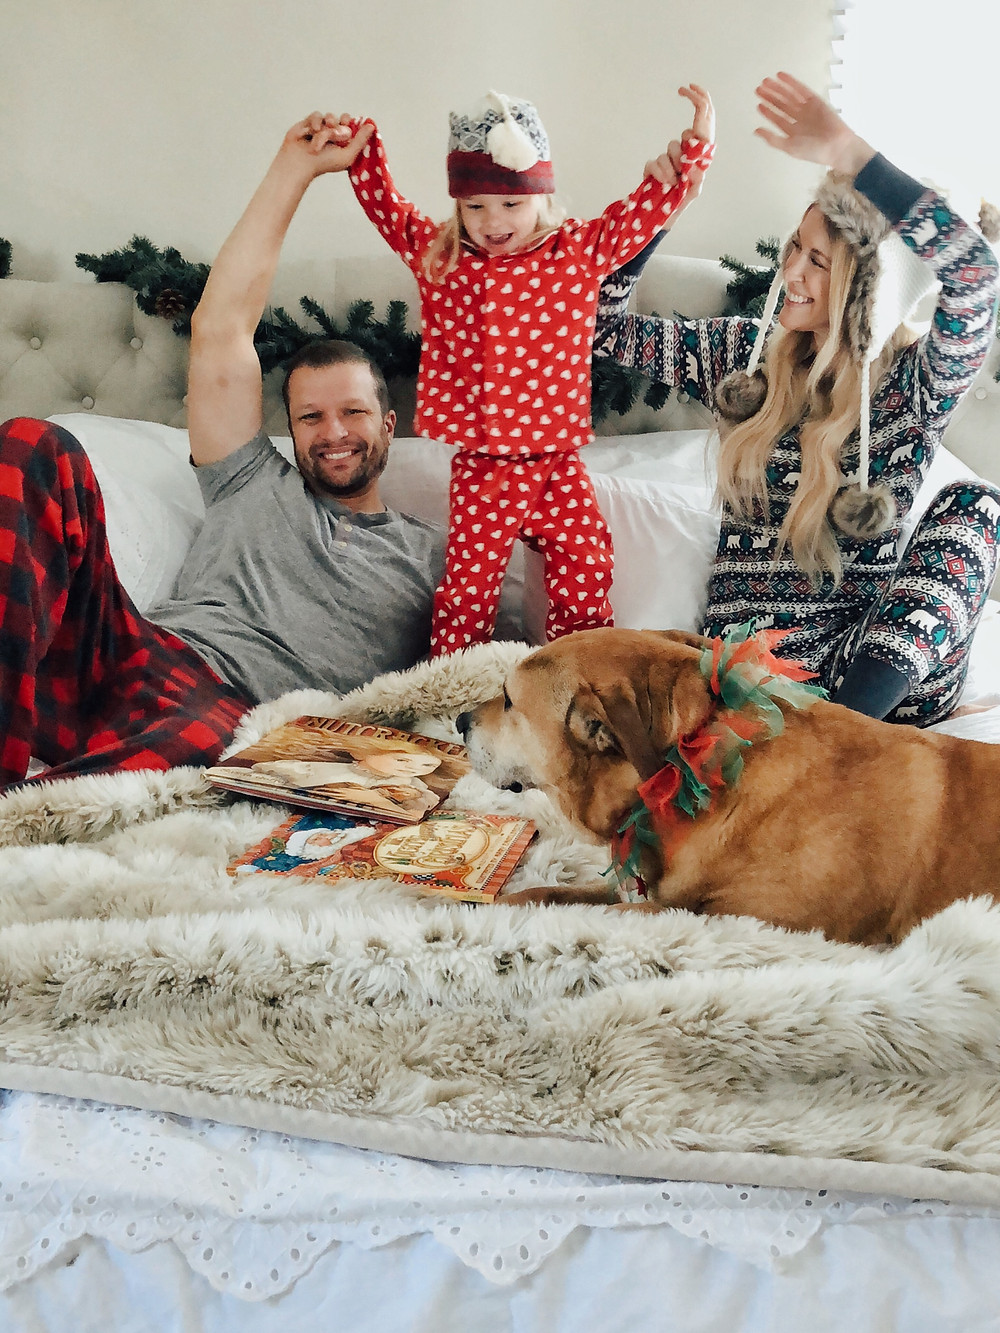 Toddler in heart print pajamas jumps on bed with parents and dog.